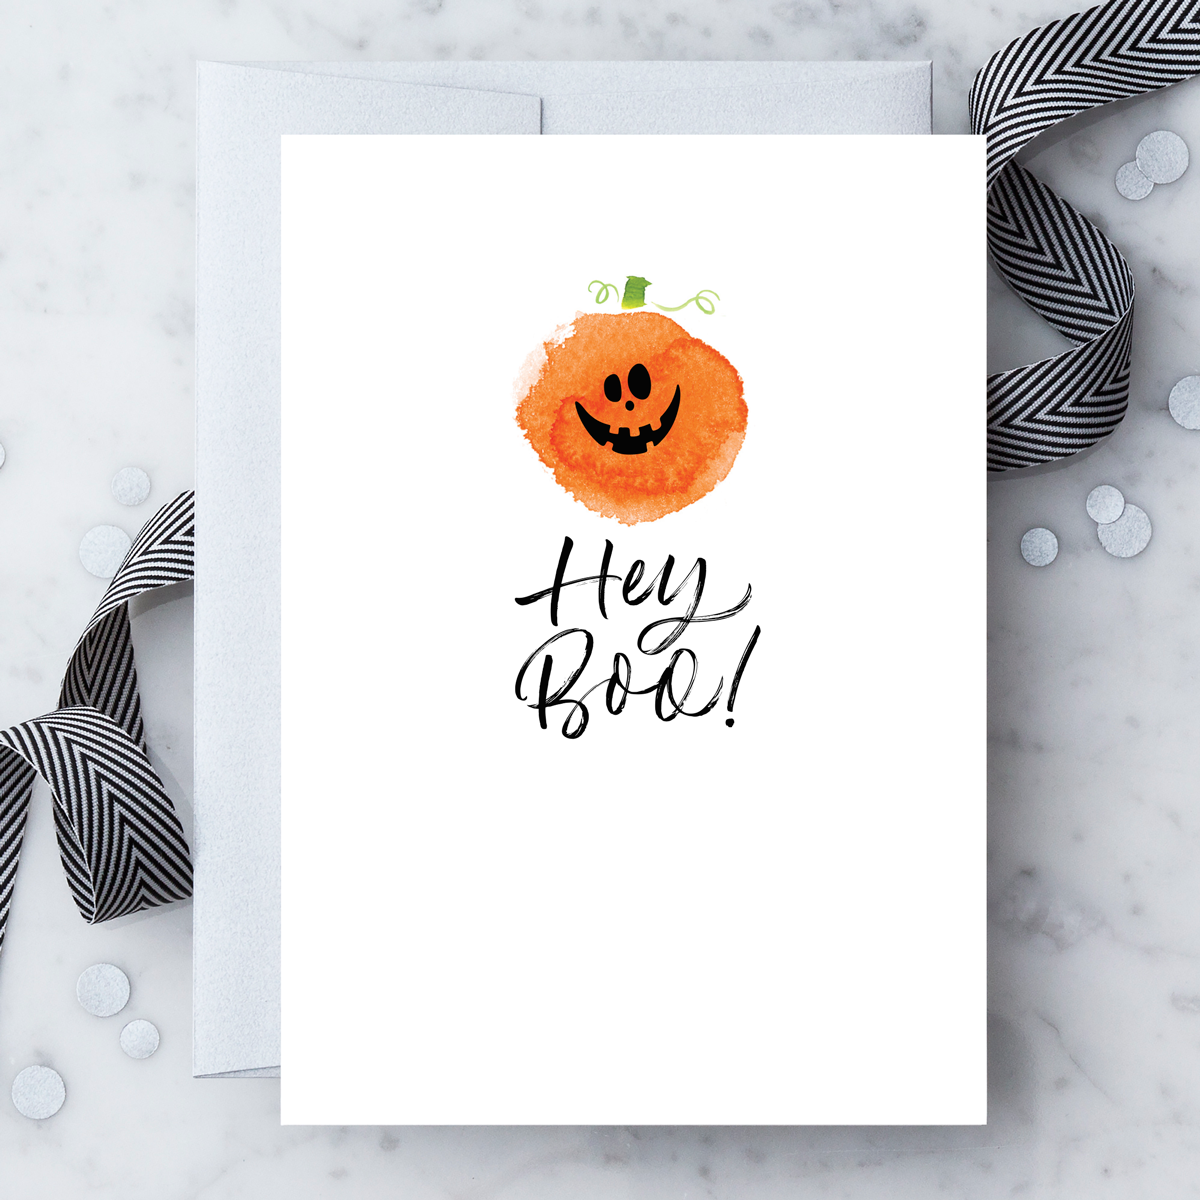 2019 Hey Boo Greeting Card